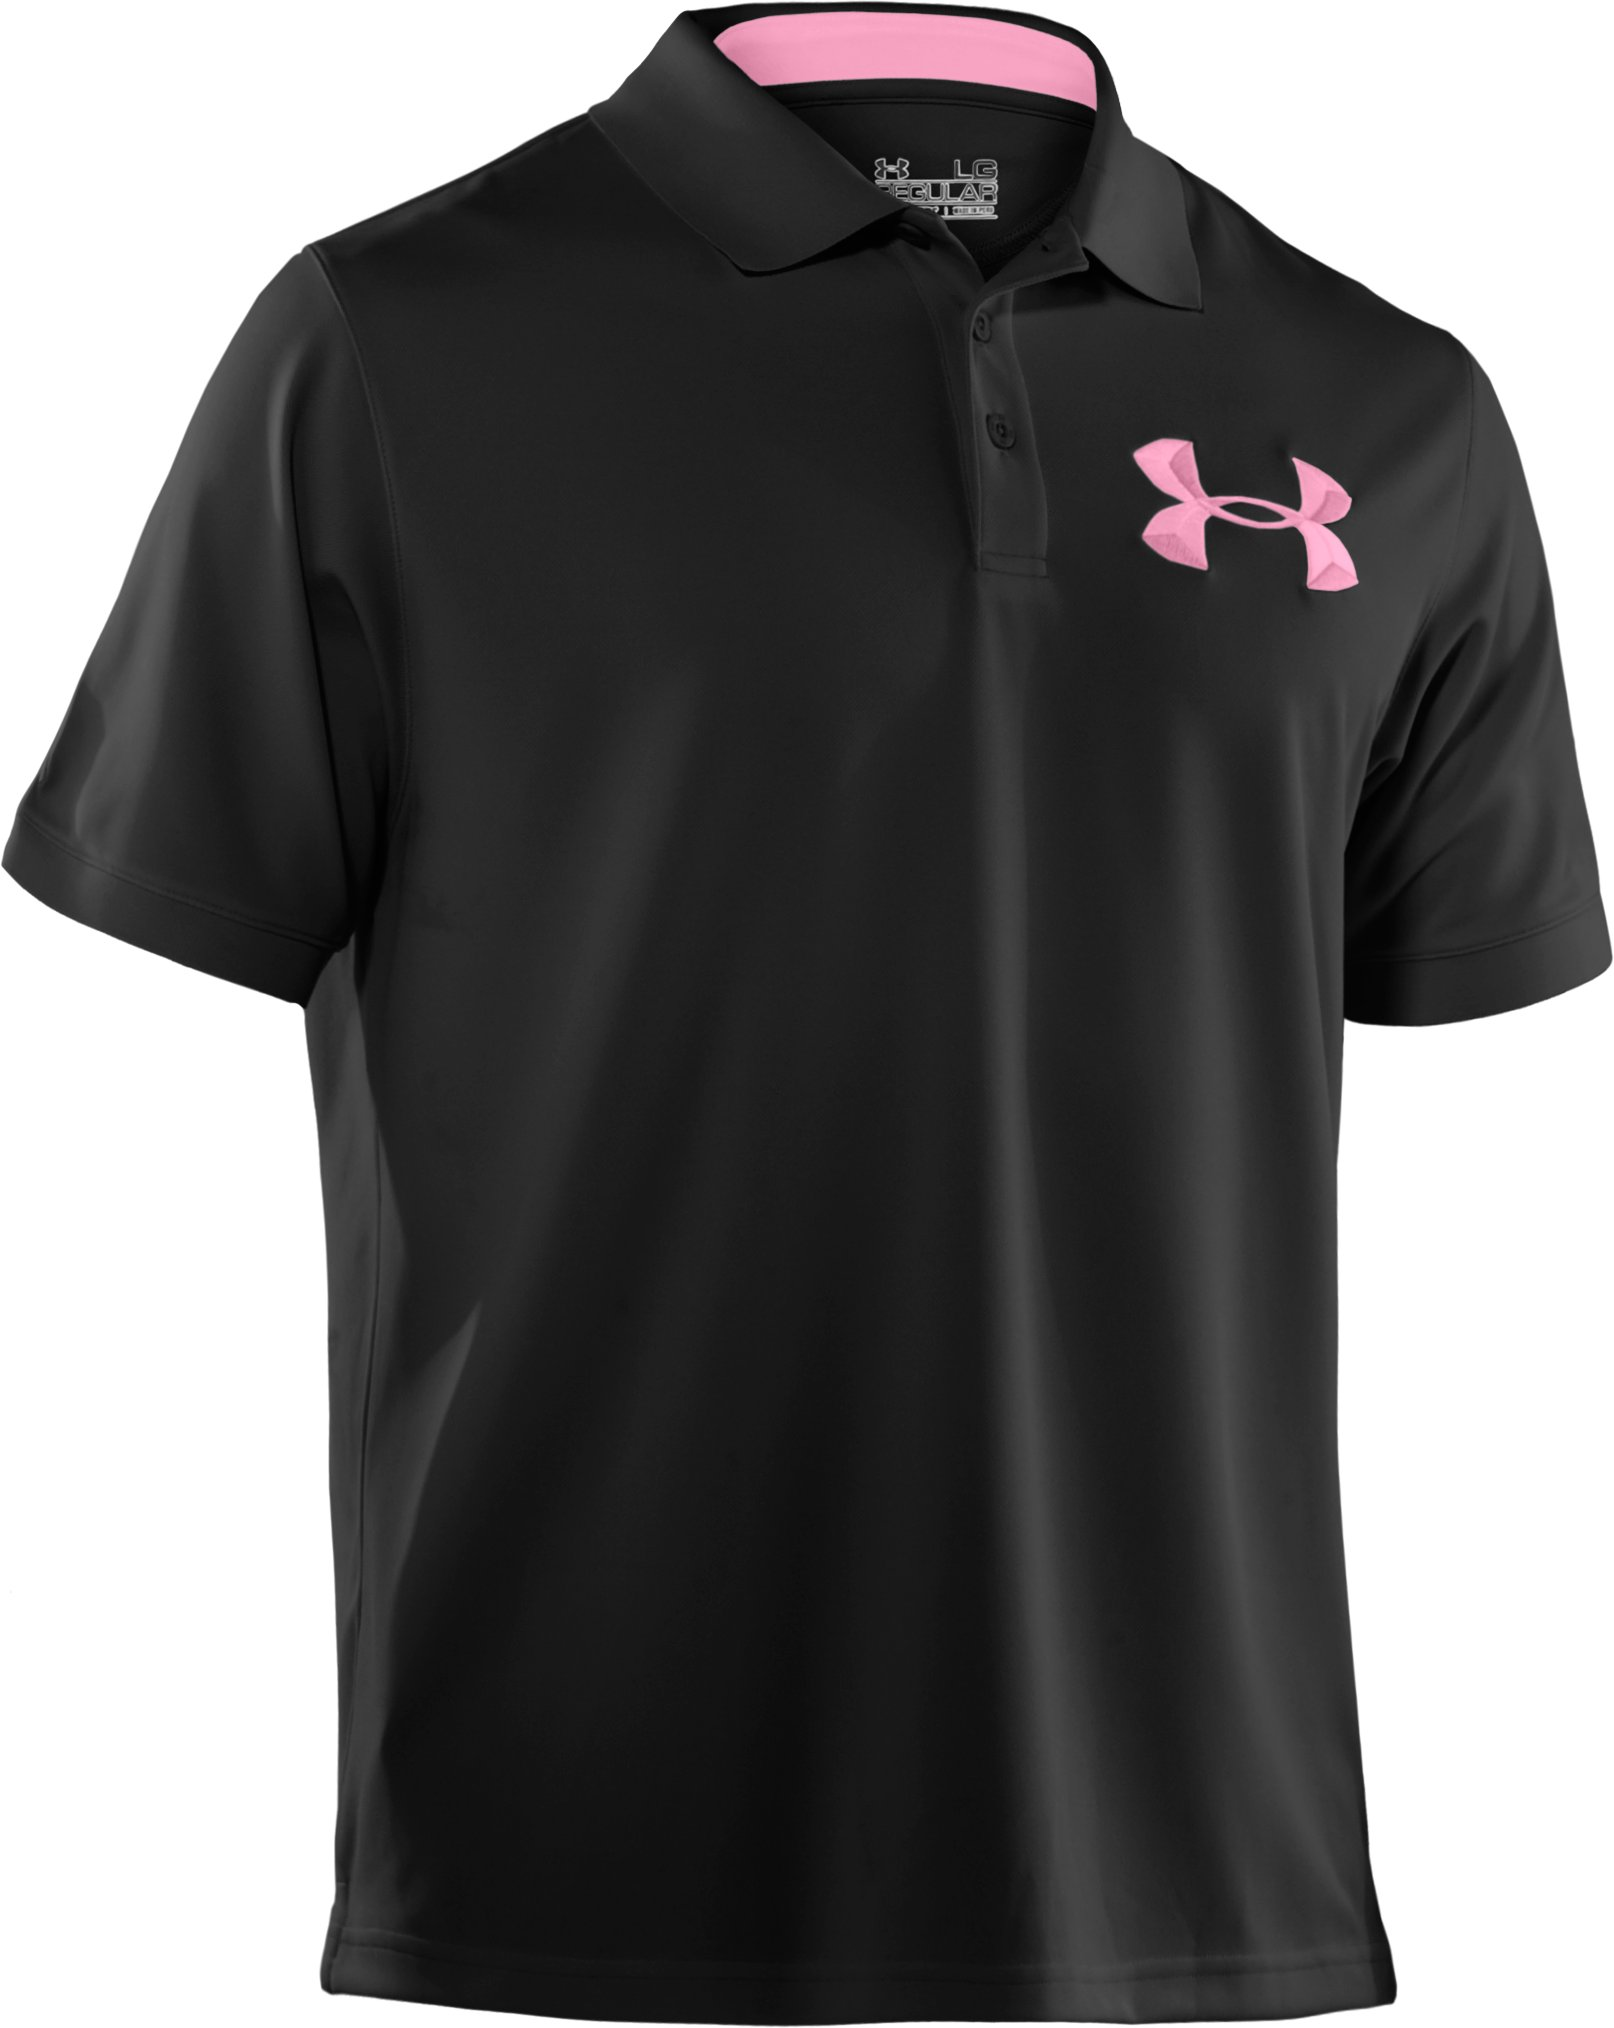 Power In Pink® UA Exploded Logo Polo Shirt, Black